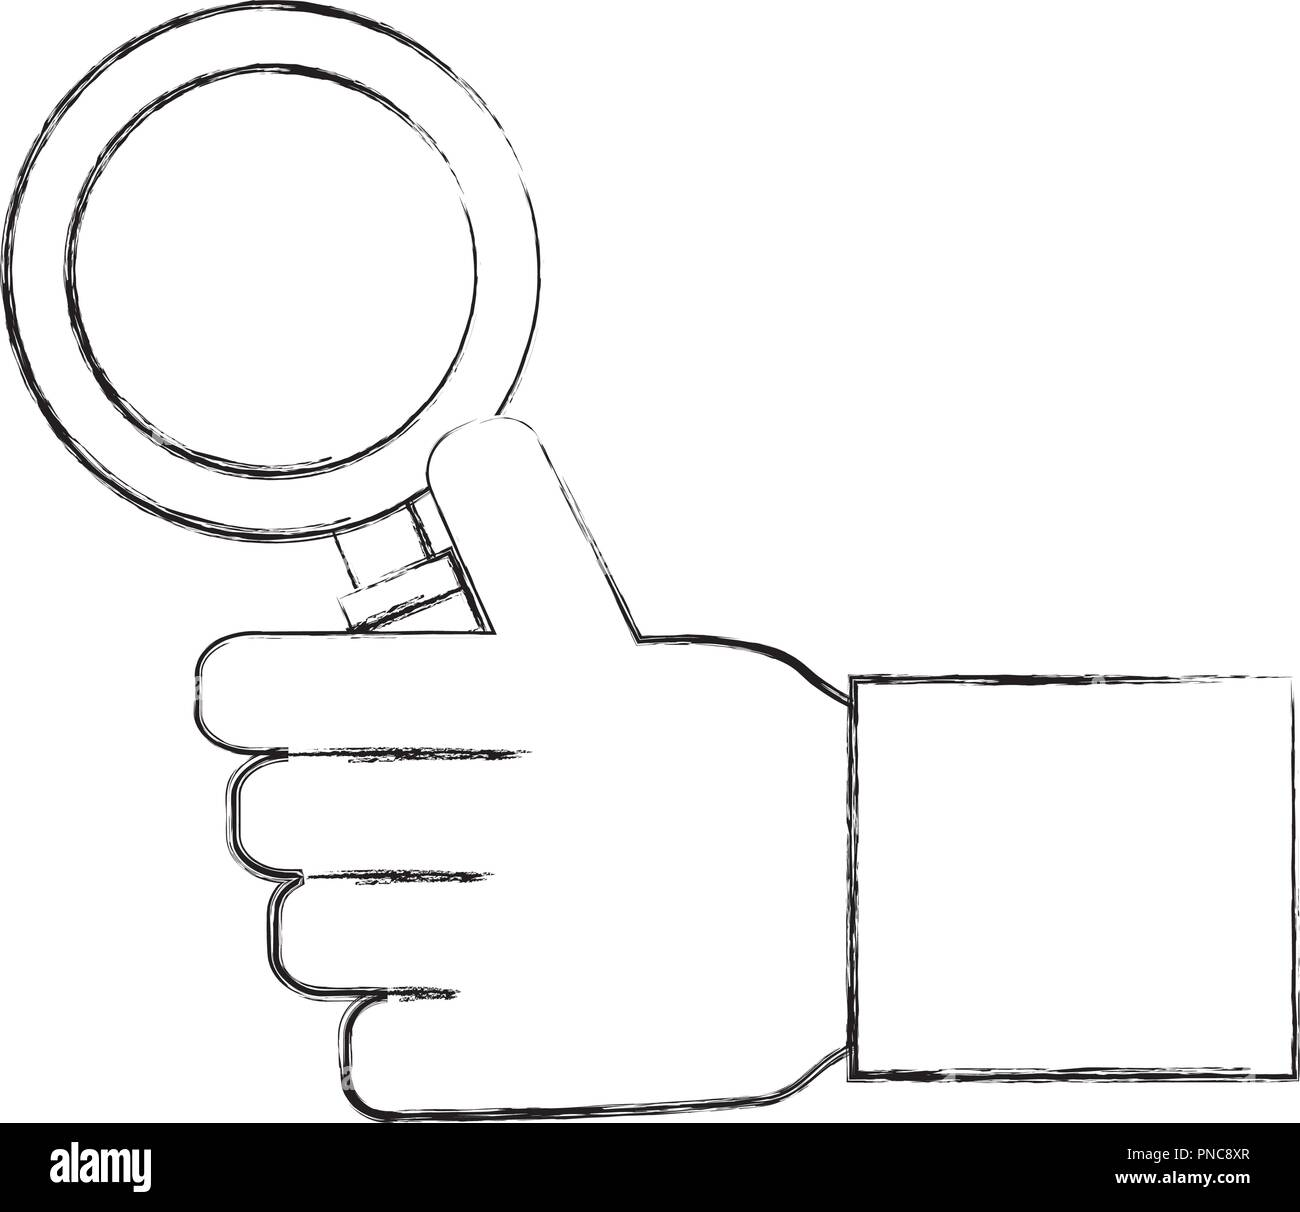 Detective Magnifying Glass High Resolution Stock Photography And Images Alamy